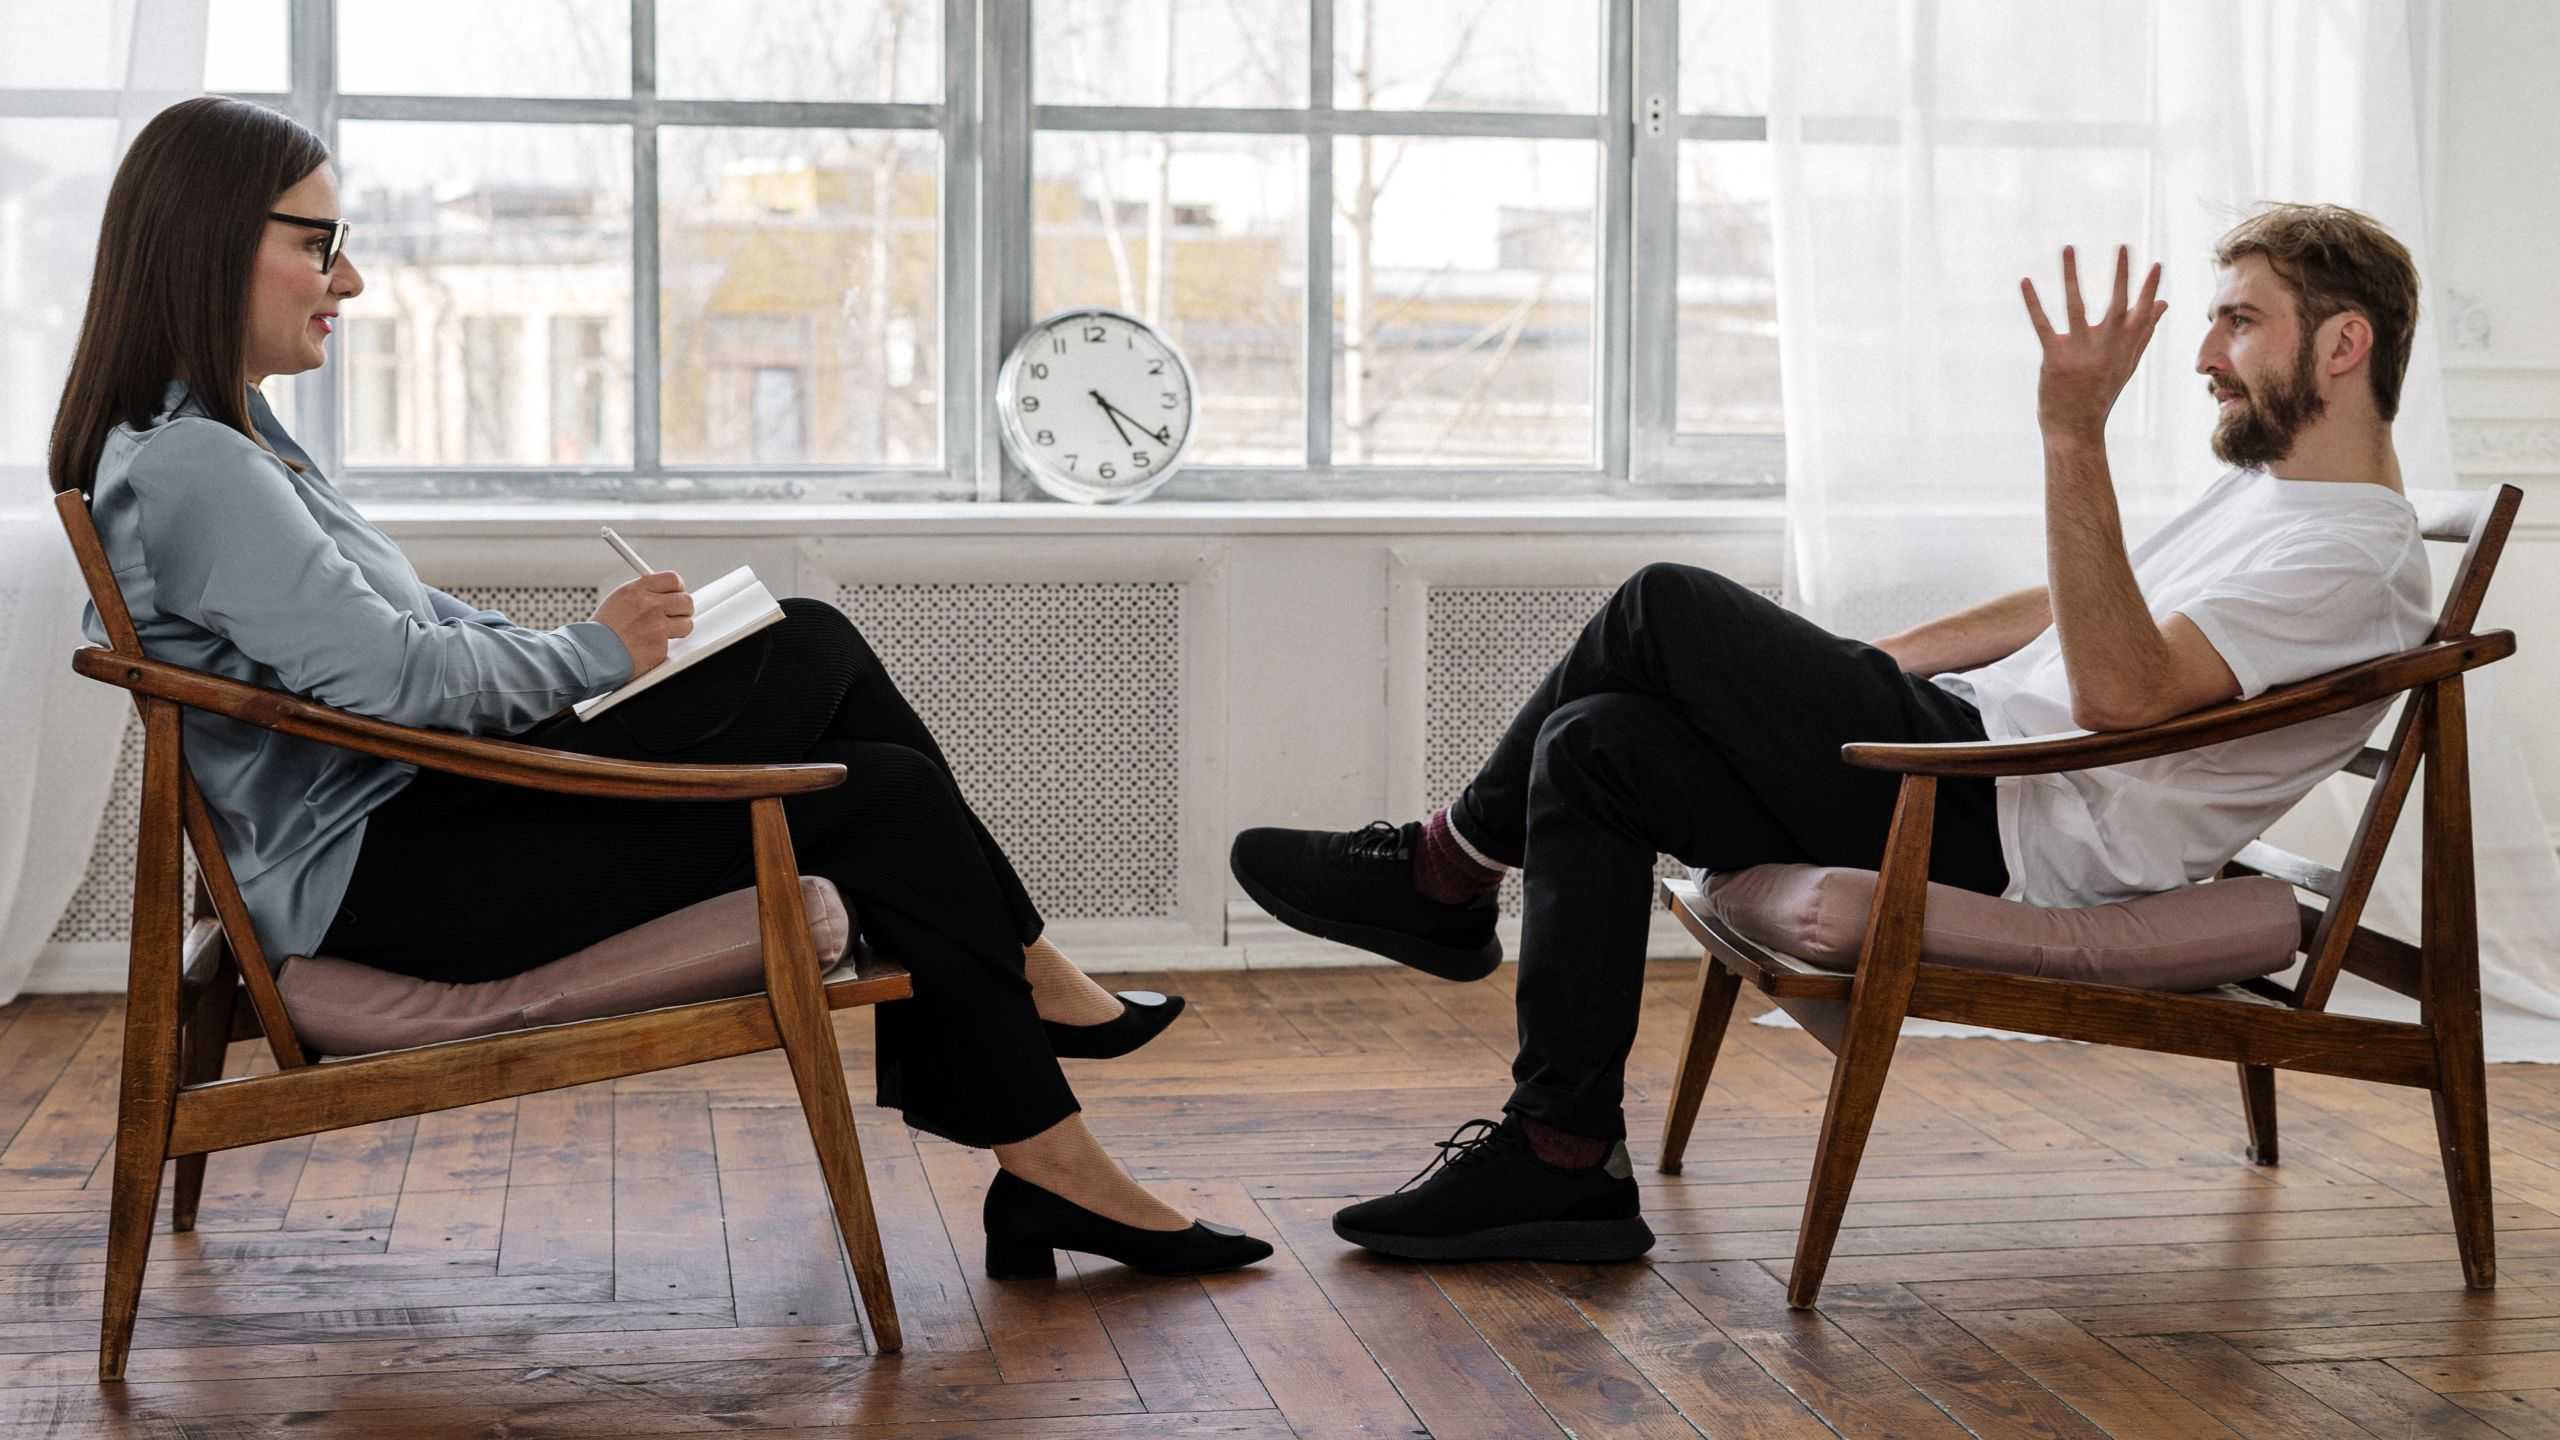 A female counselor sits across from her male patient the same way one would during tinnitus-focused therapy.